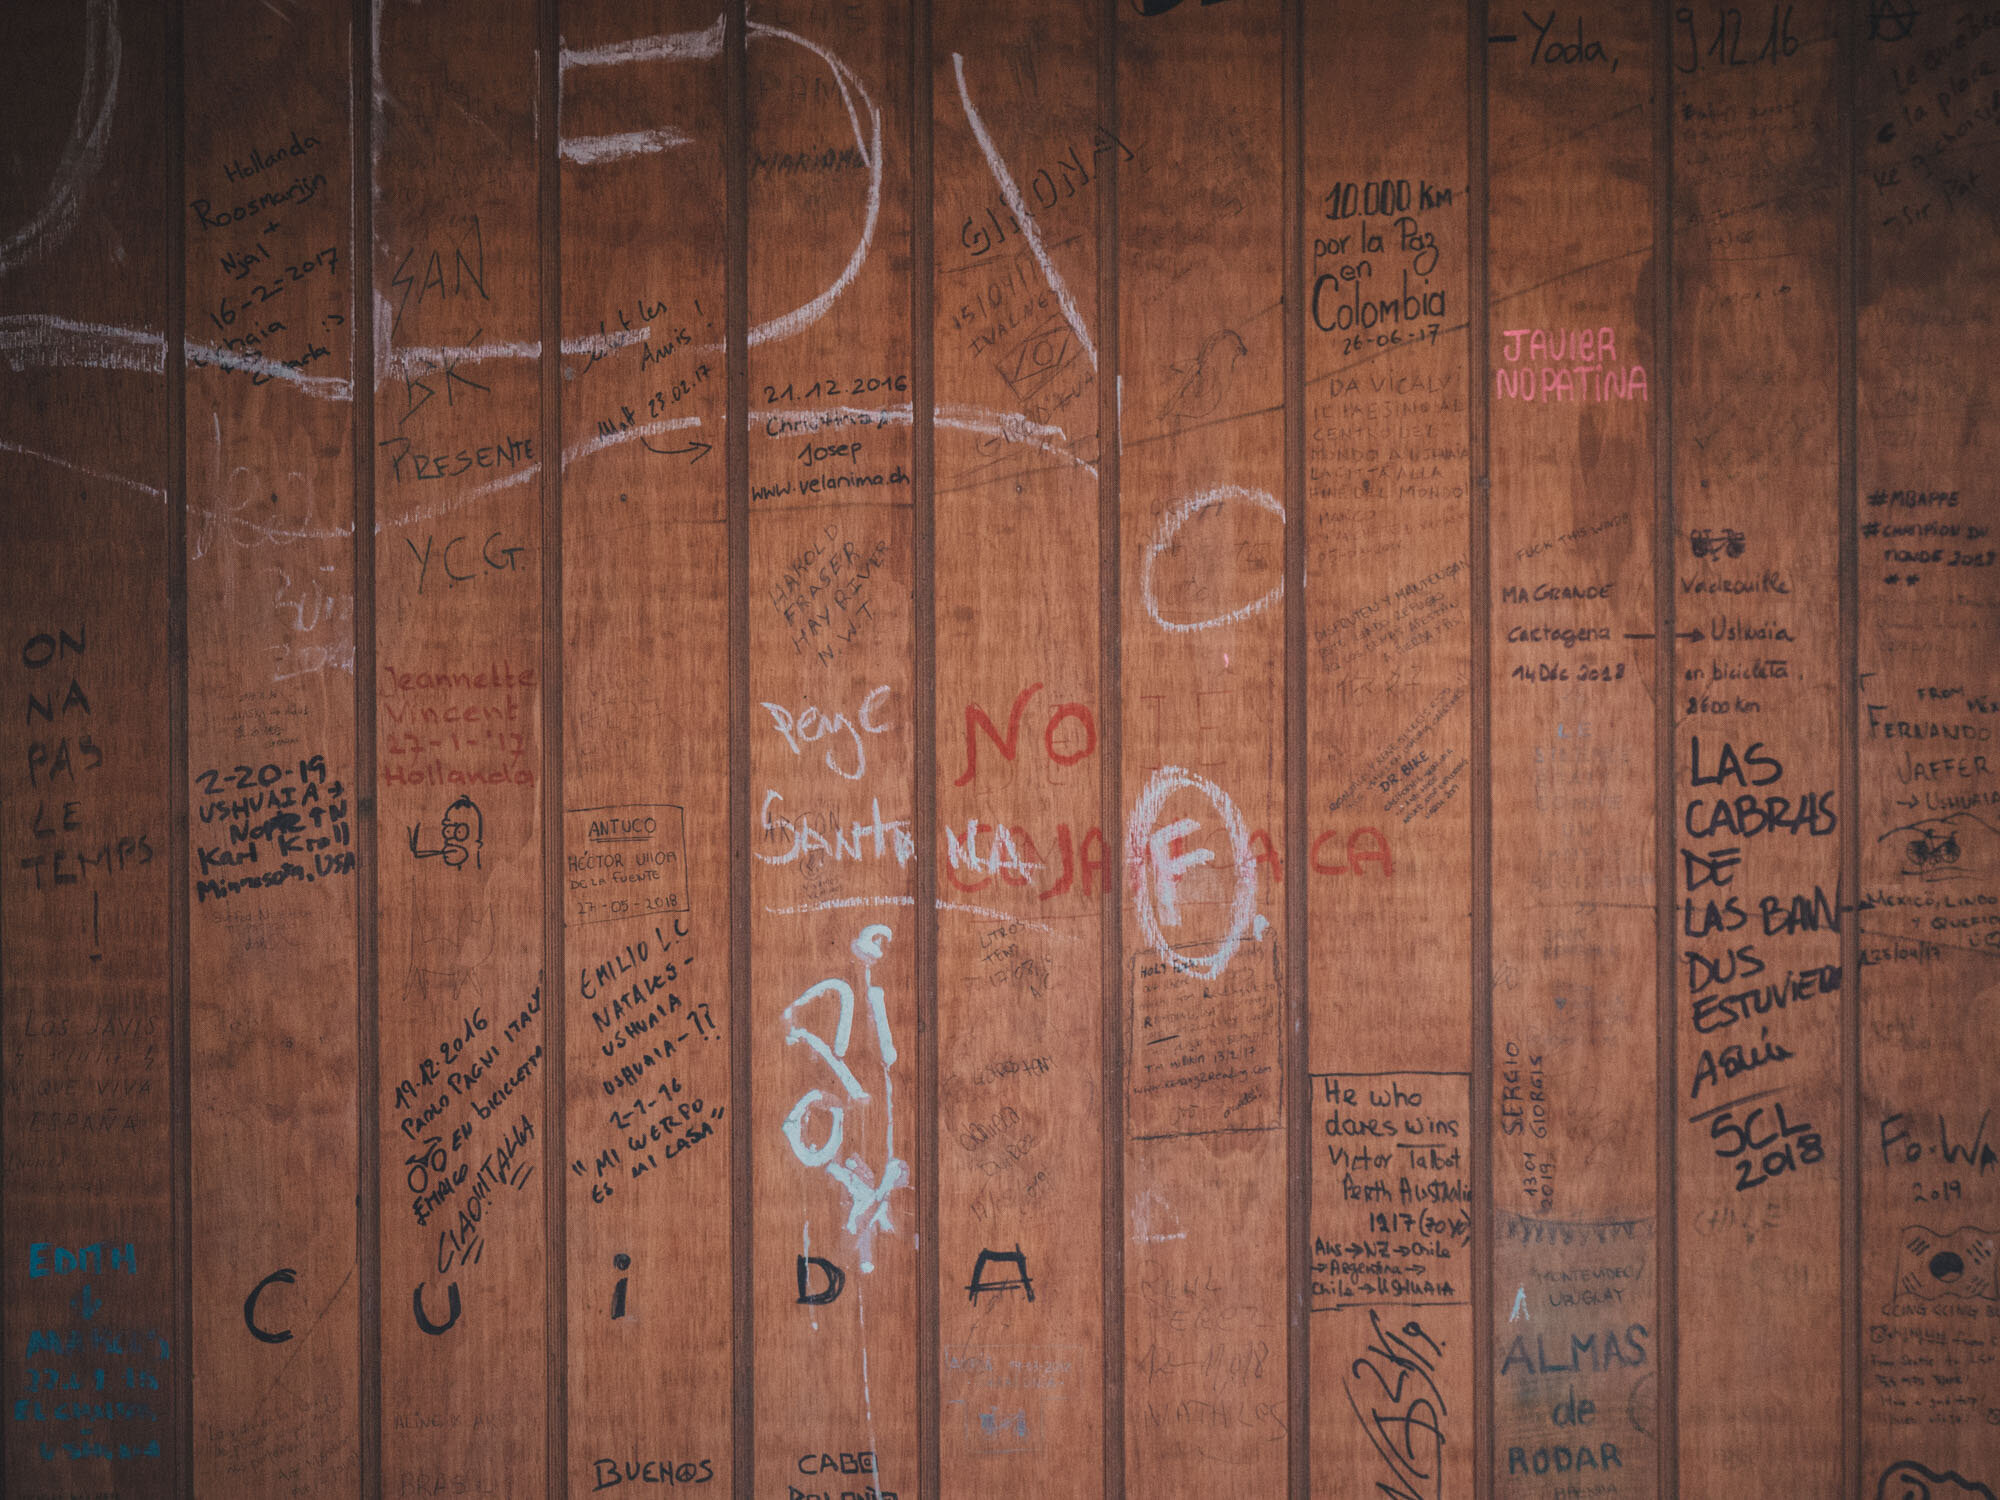 The markings from other travellers in a refugio along the road.